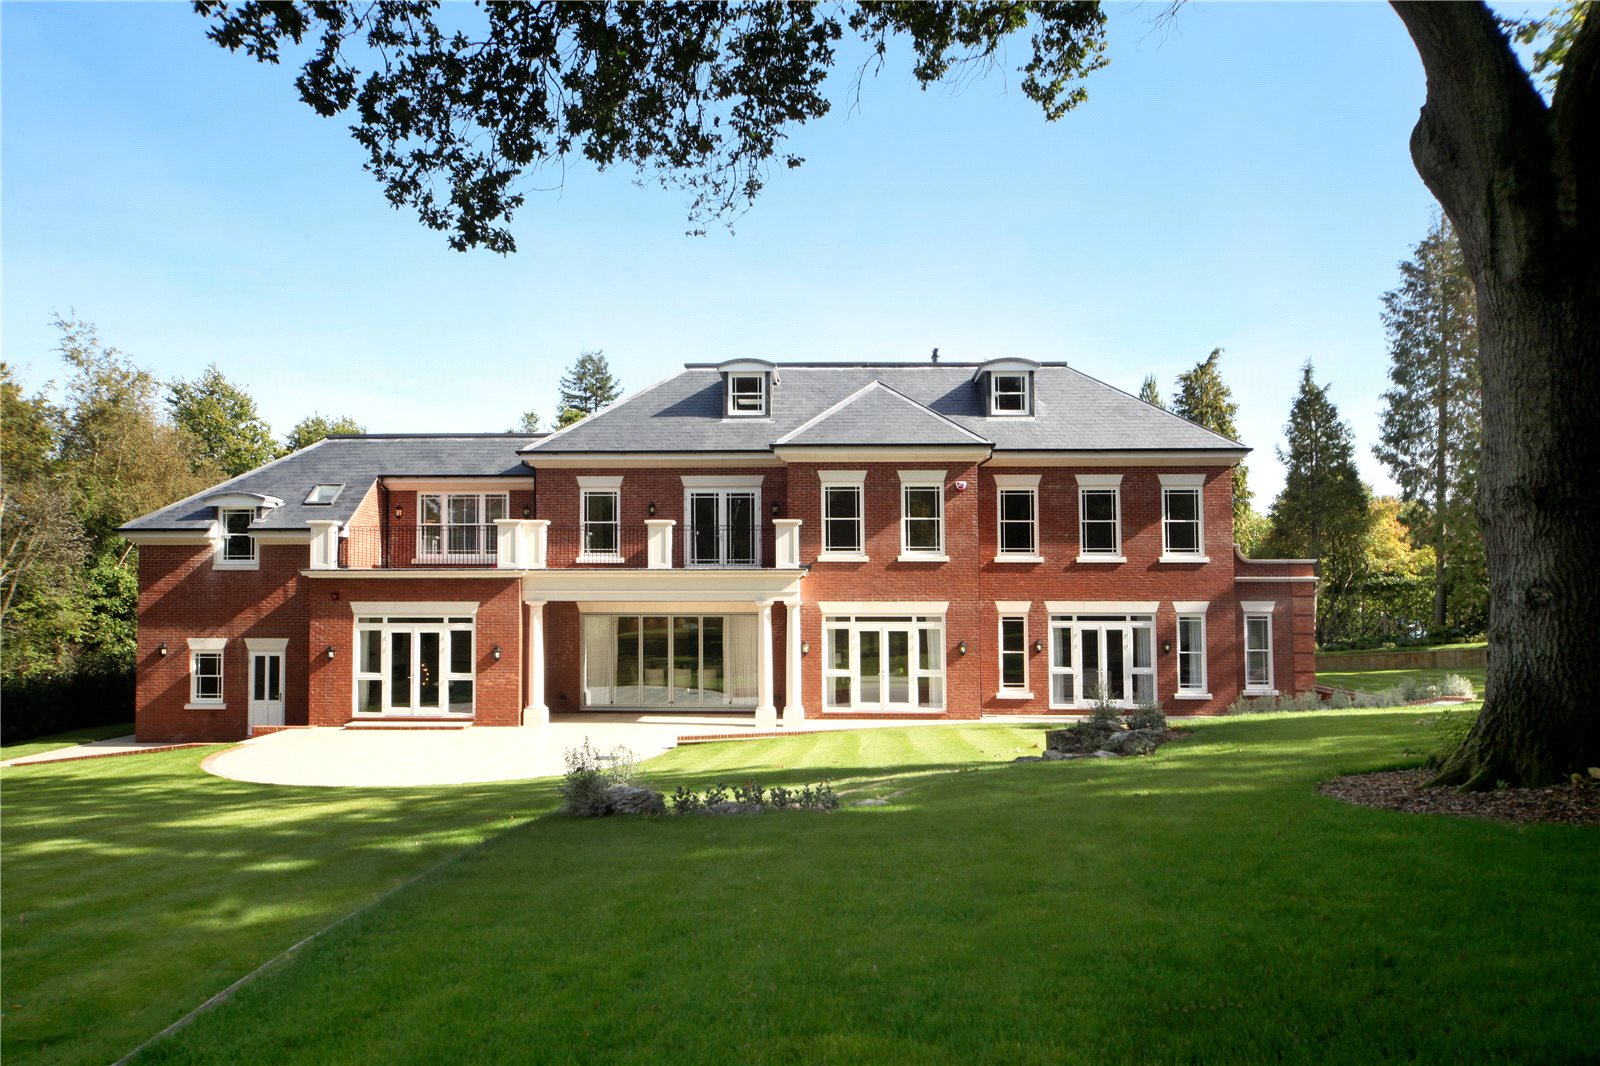 Single Family Home For Sale At Titlarks Hill, Sunningdale, Berkshire, SL5  Sunningdale,